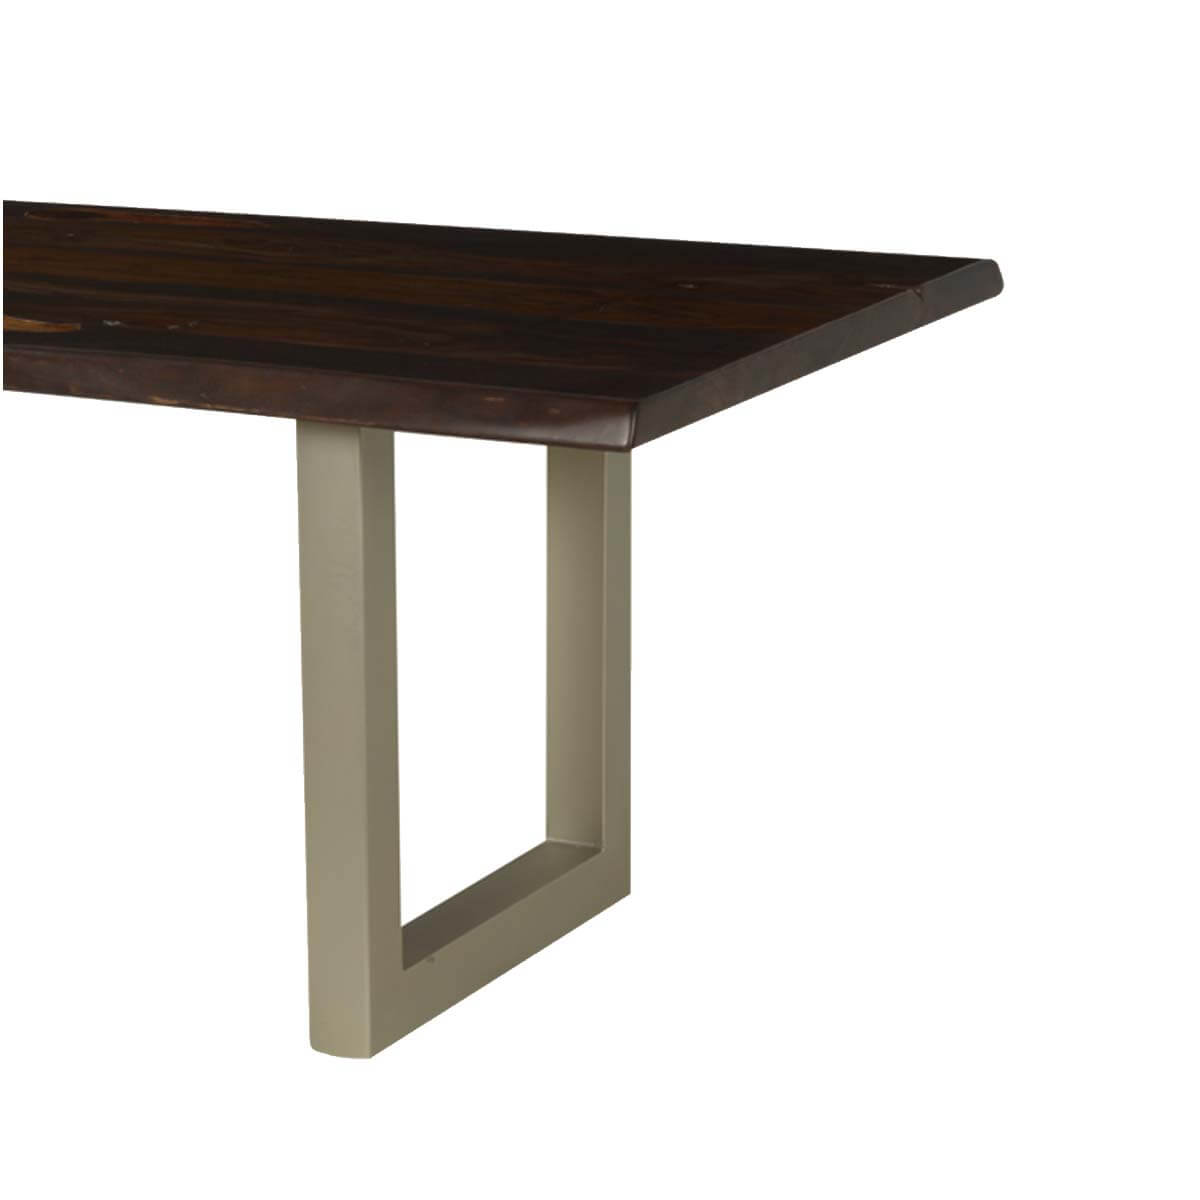 Modern frontier acacia wood live edge dining table for 12 for 12 people dining table